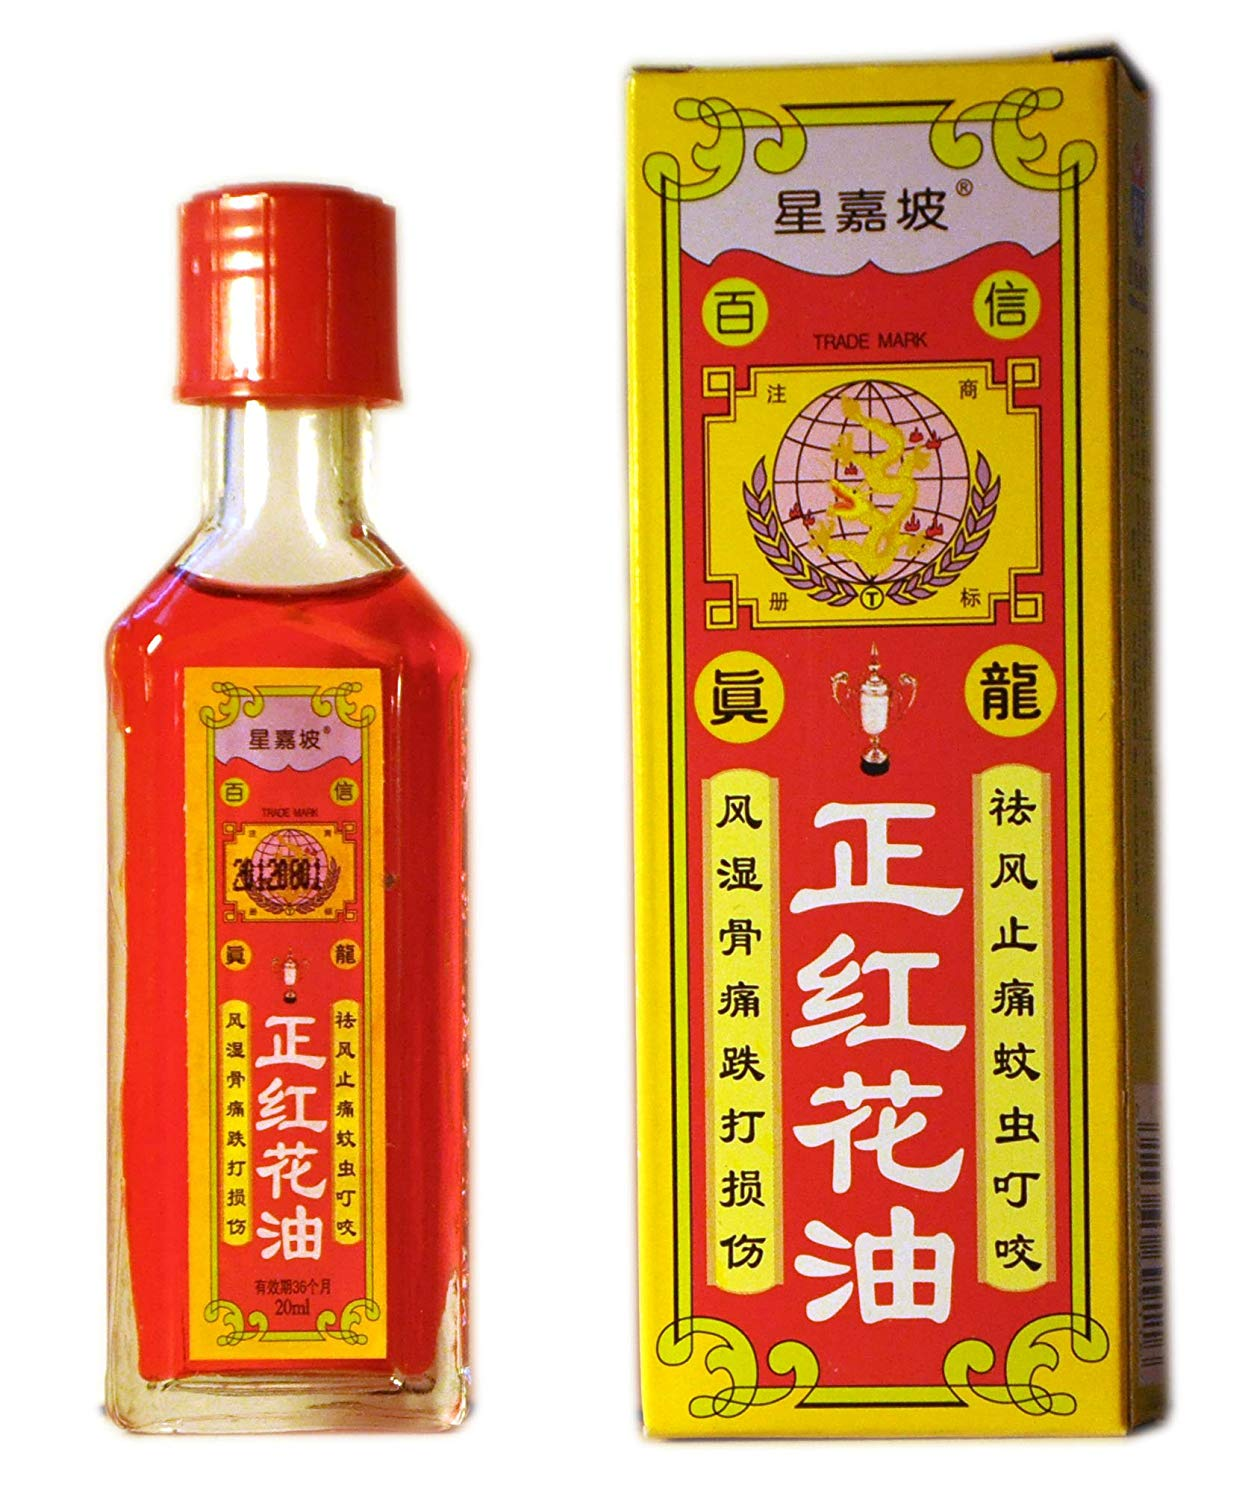 Red Flower Oil - Zheng Hong Hua You